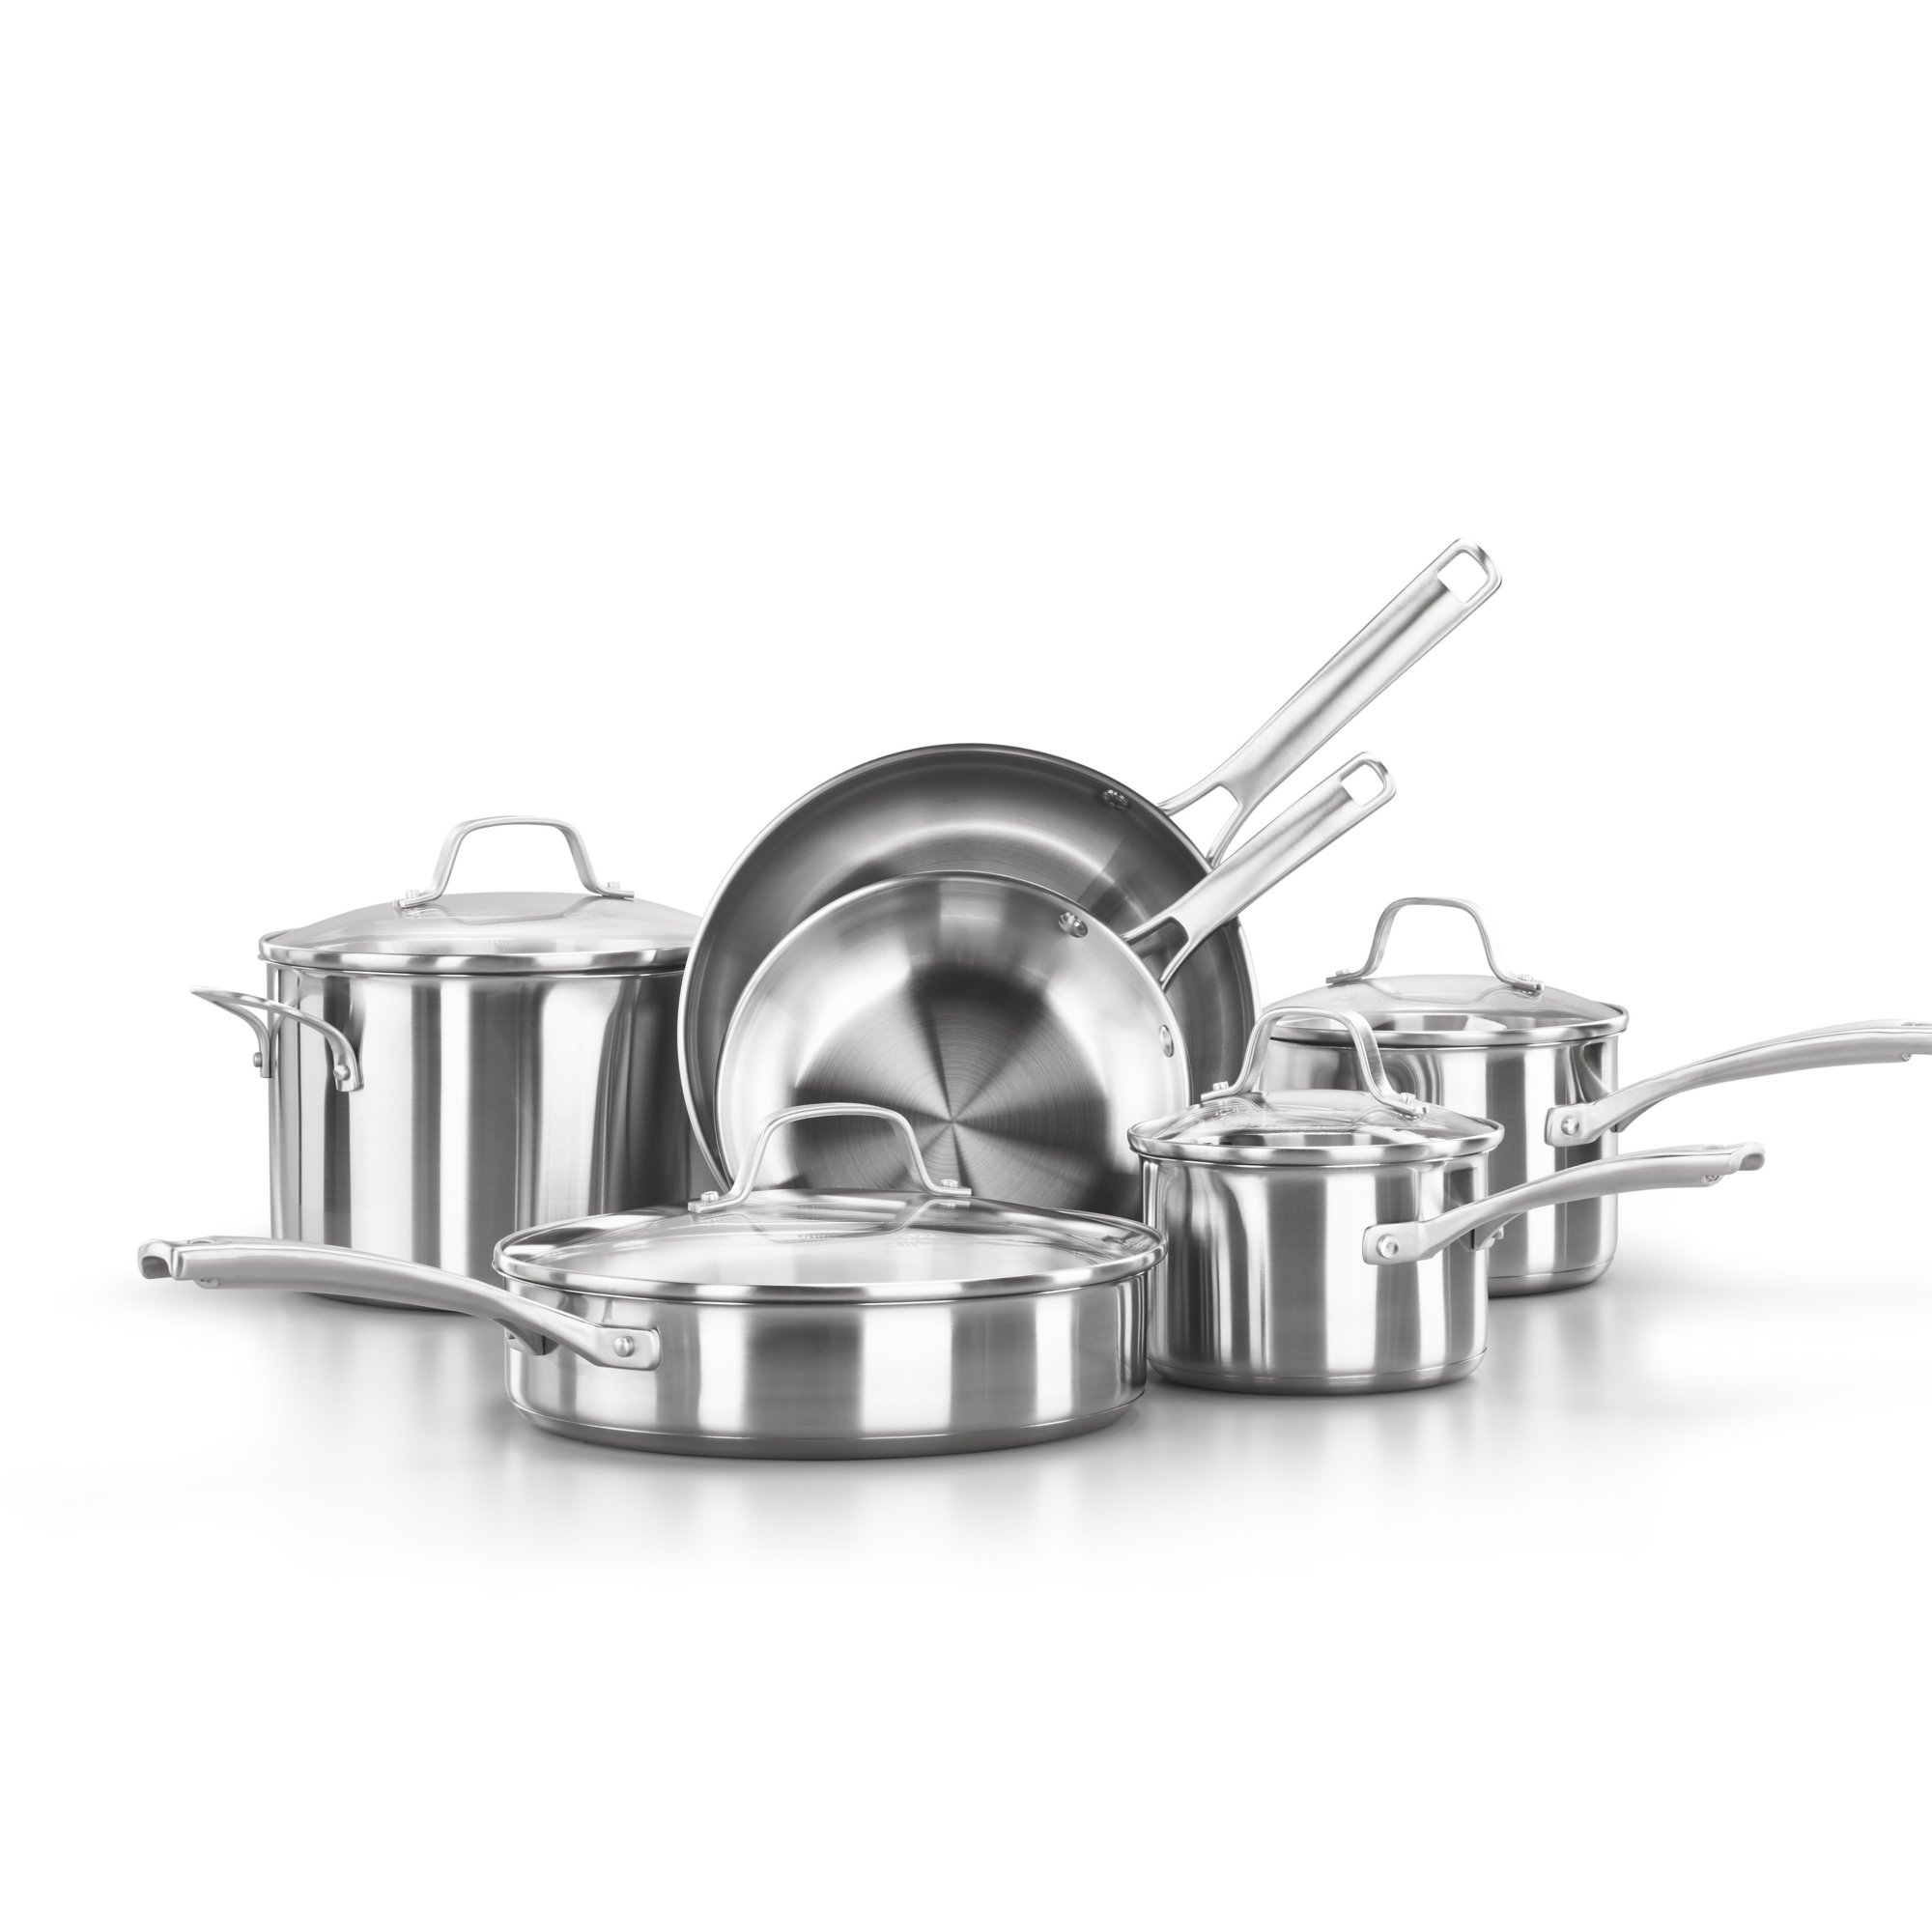 Calphalon Classic? Stainless Steel 10-Piece Cookware Set